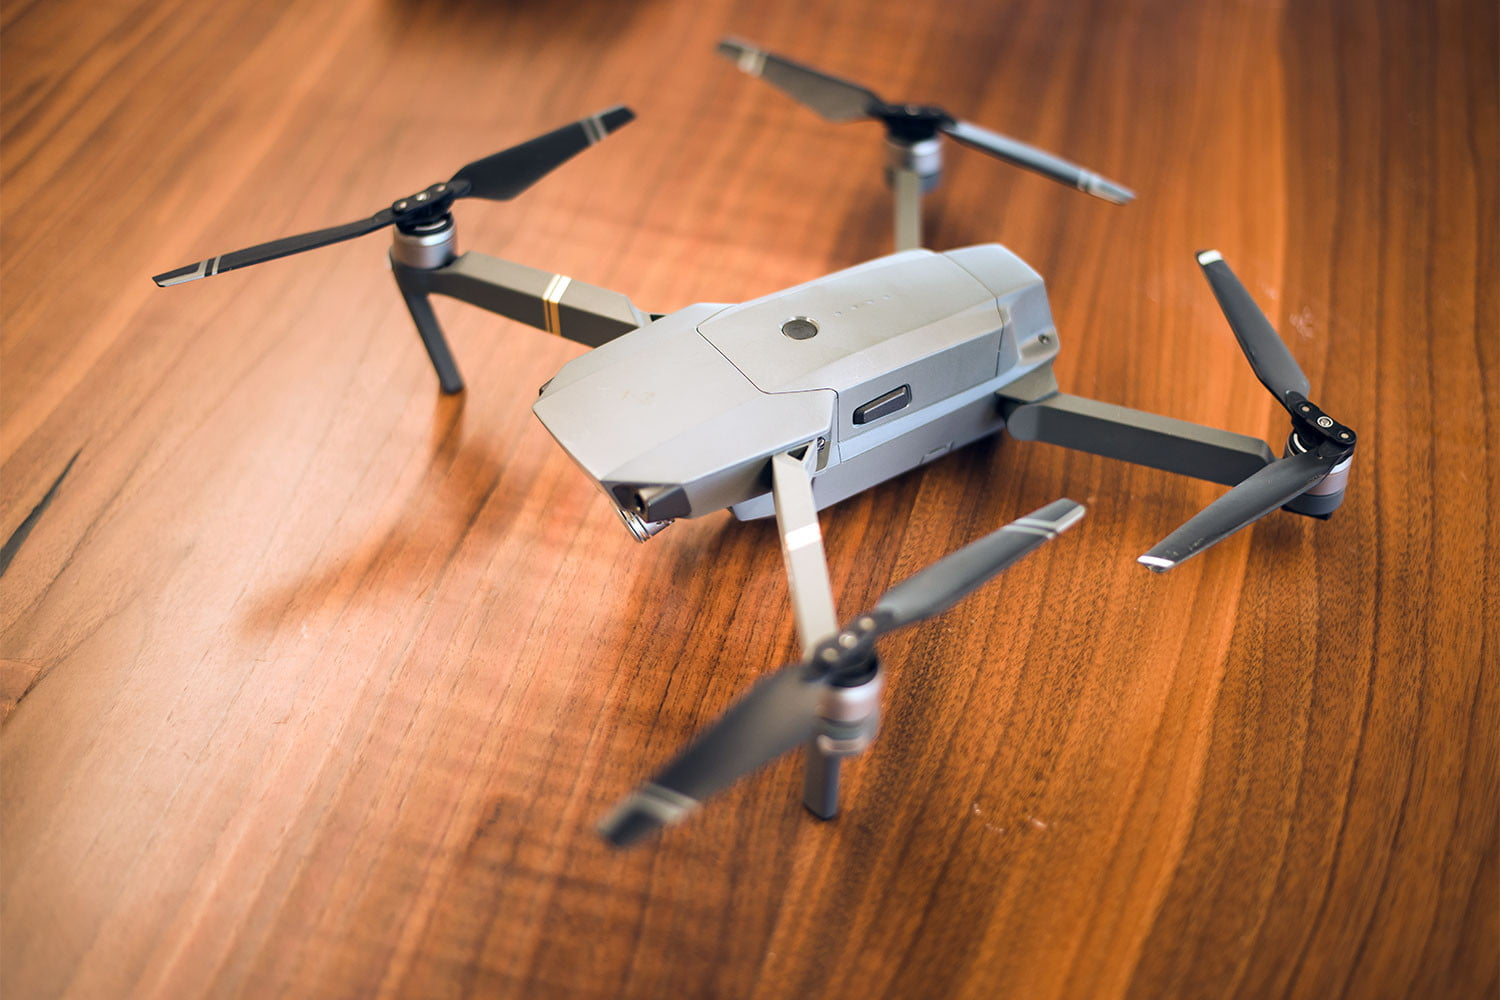 DJI's Mavic Pro Drone Has Just Dropped to Its Lowest-ever